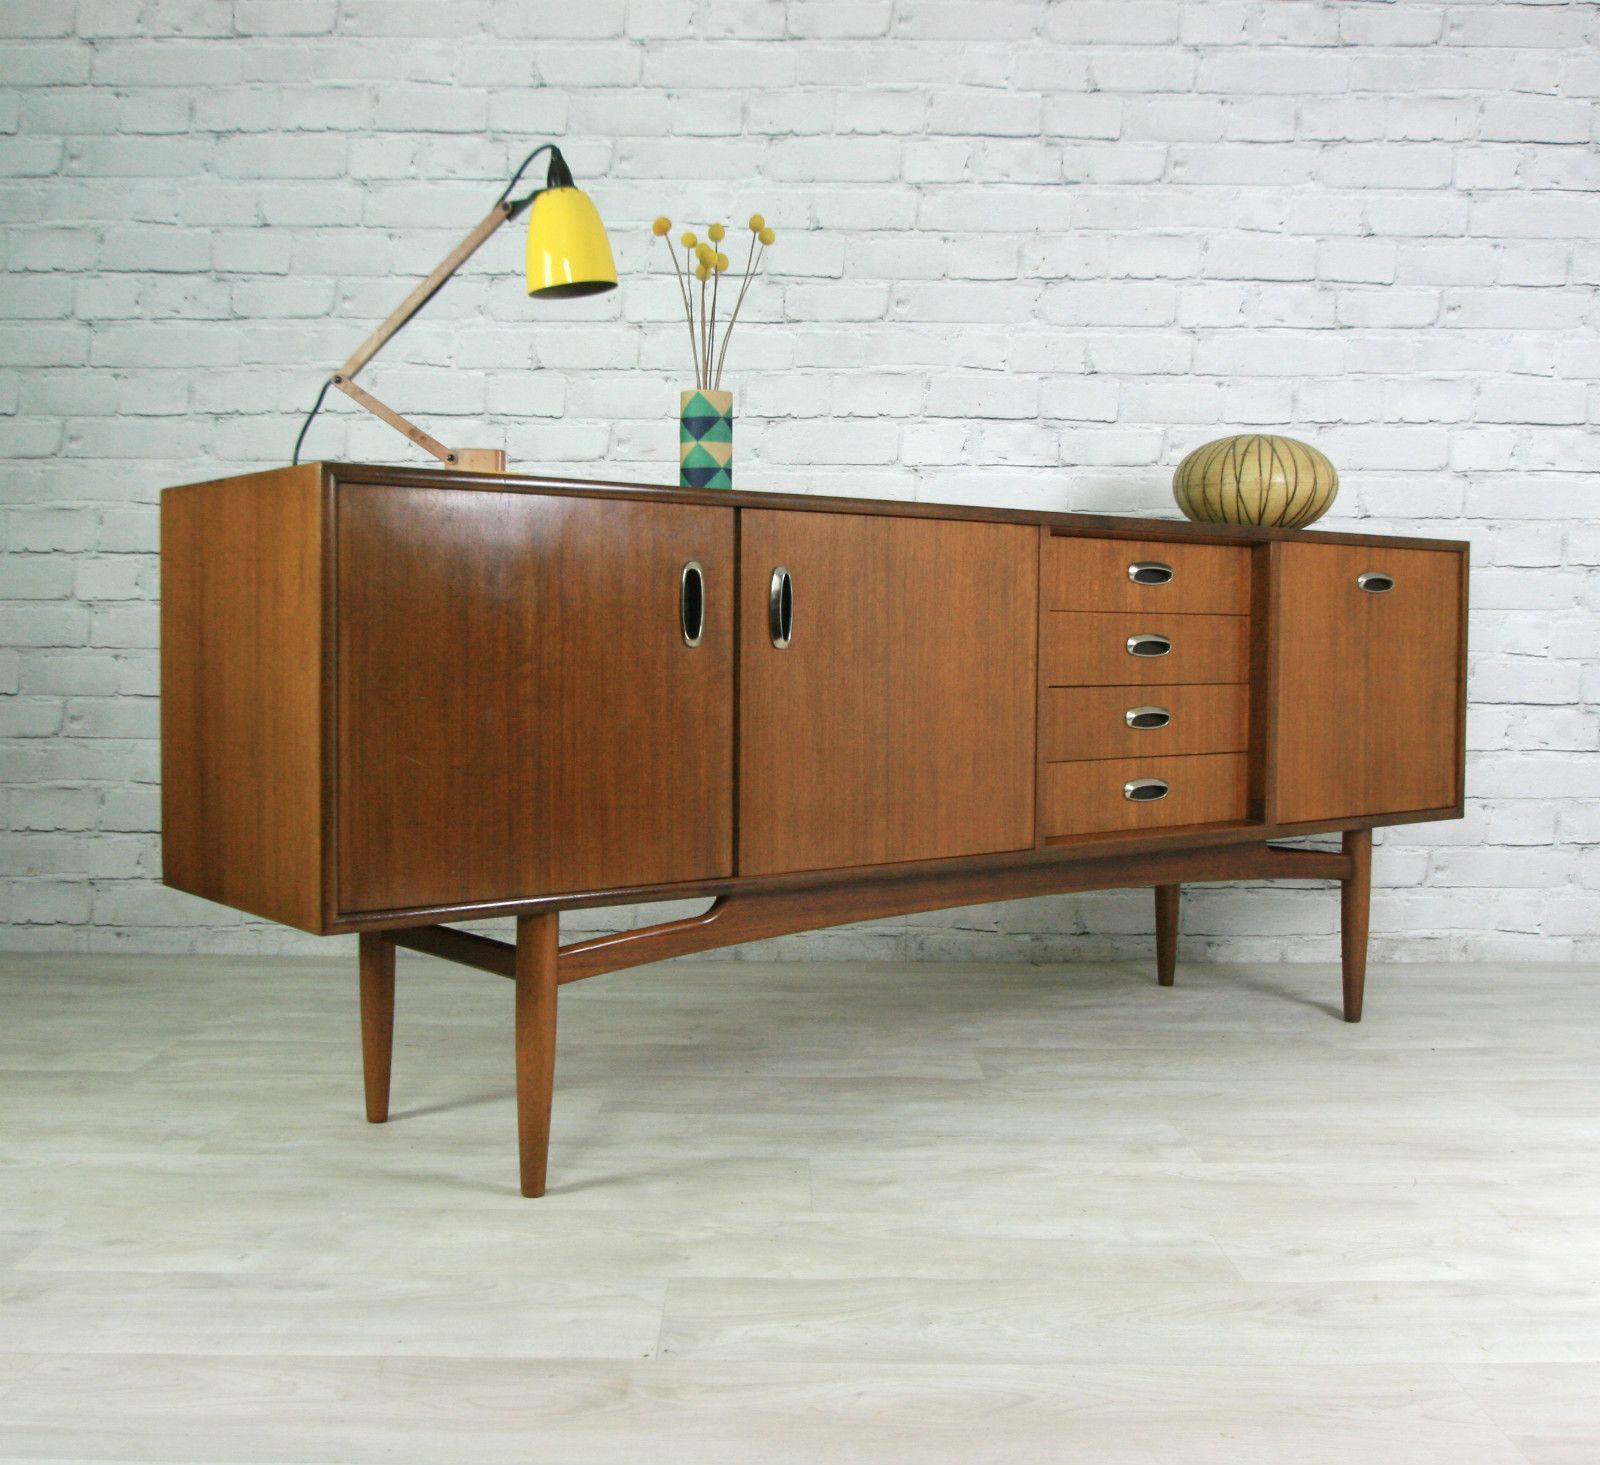 g plan retro vintage teak mid century danish style. Black Bedroom Furniture Sets. Home Design Ideas